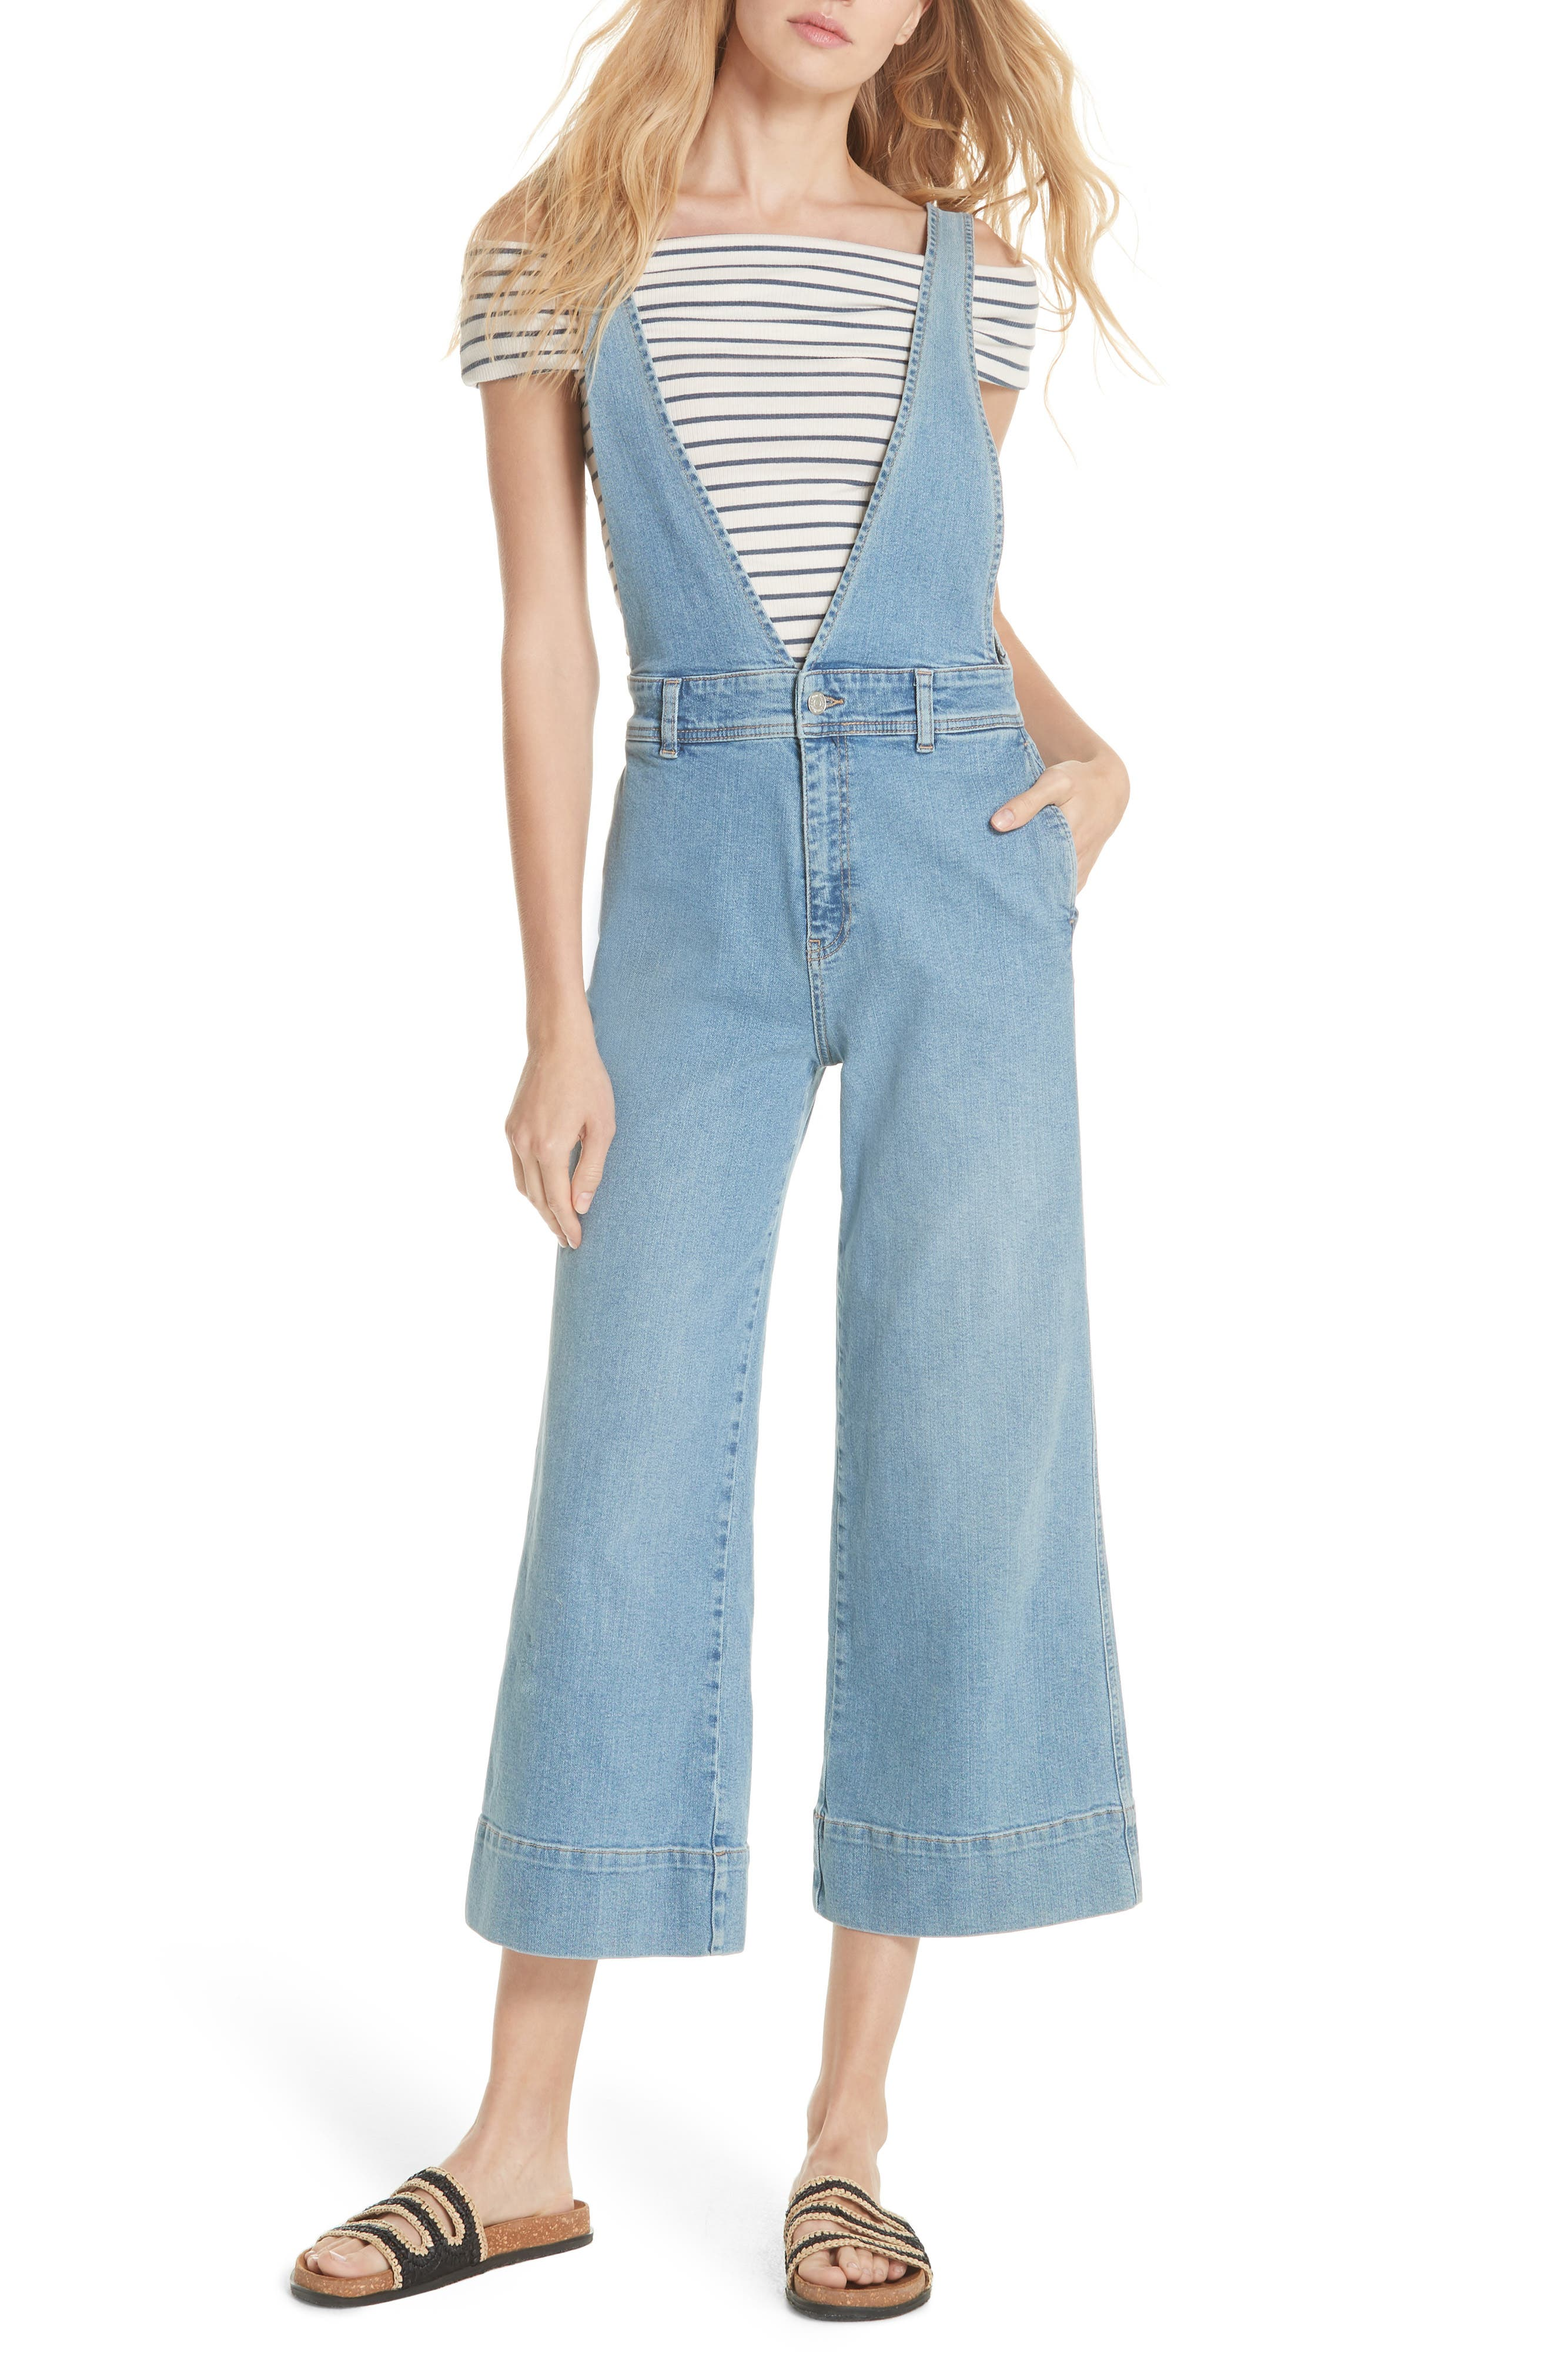 We the Free by Free People A-Line Overalls,                             Main thumbnail 1, color,                             456